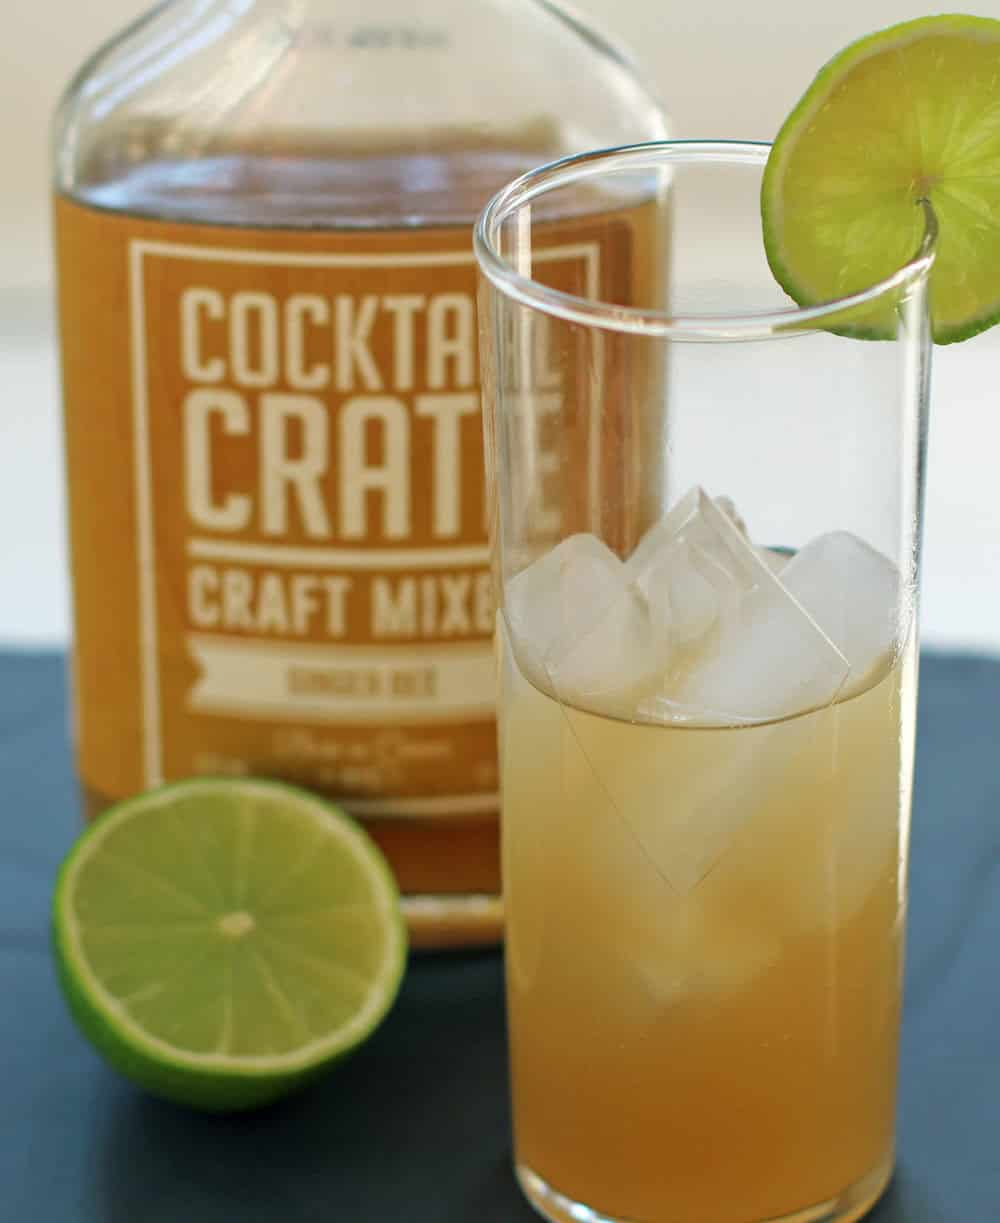 Using Cocktail Crate mixer to make a Moscow Mule is great for a cocktail novice.